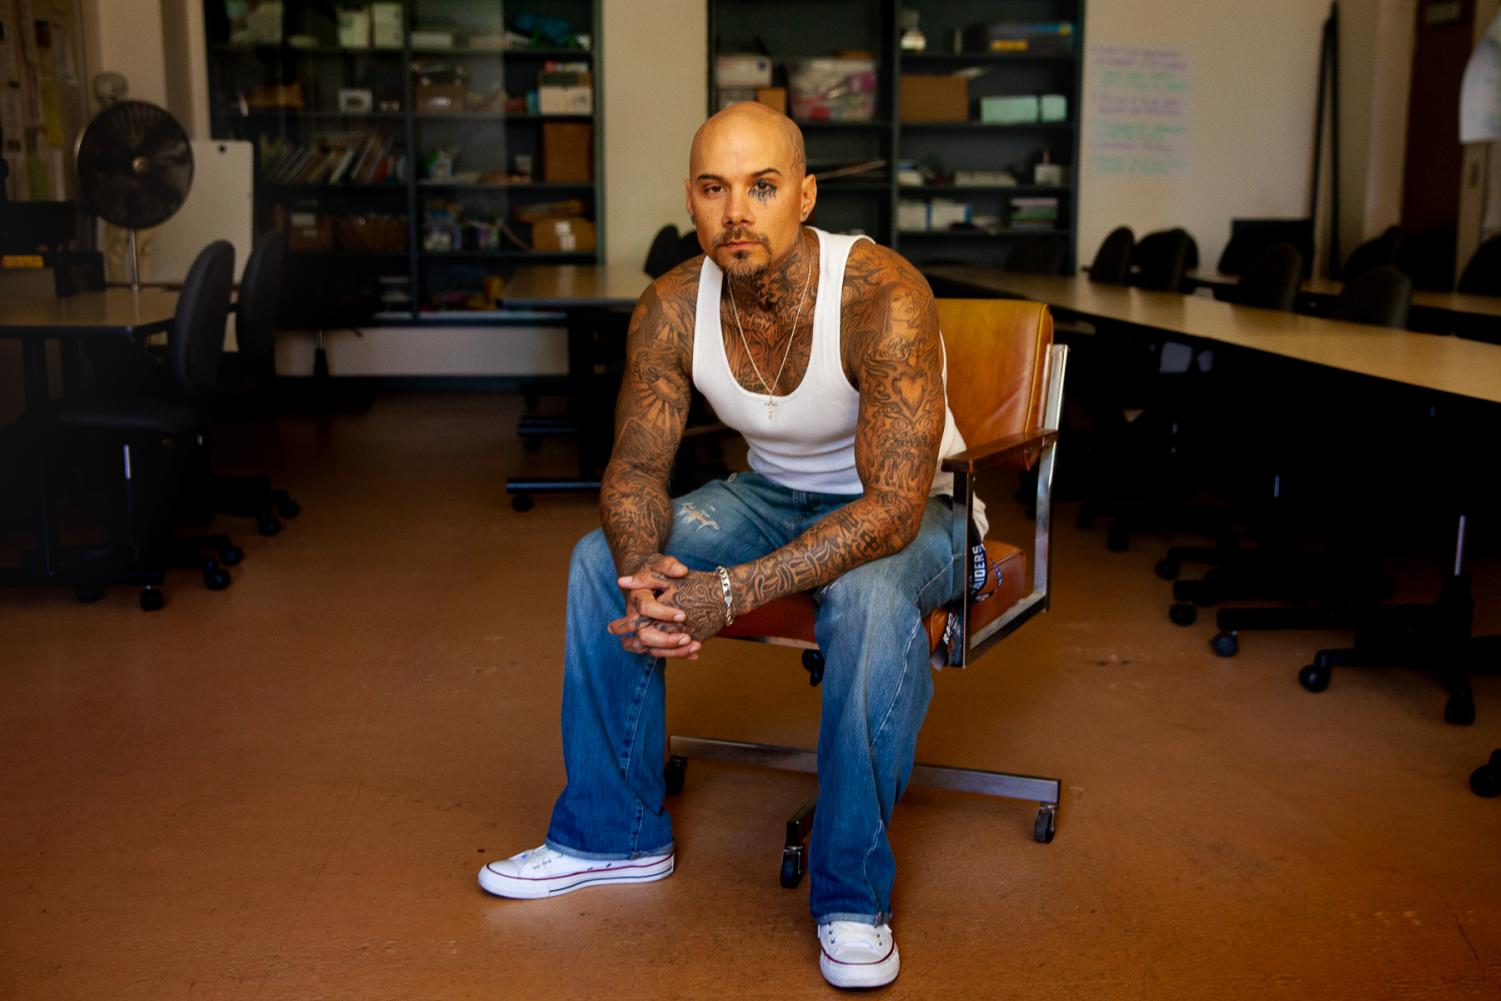 """City College student Brandon Reyes Gray talks about a near life sentence served in state prisons and transitioning from incarceration to modern society on Friday, Sept. 13, 2019, in the Administration Building, Room 161 at City College in Santa Barbara, Calif. """"It's too easy to fall back into criminal behavior after they let you out,"""" Gray said. """"The cycle is geared against you."""""""